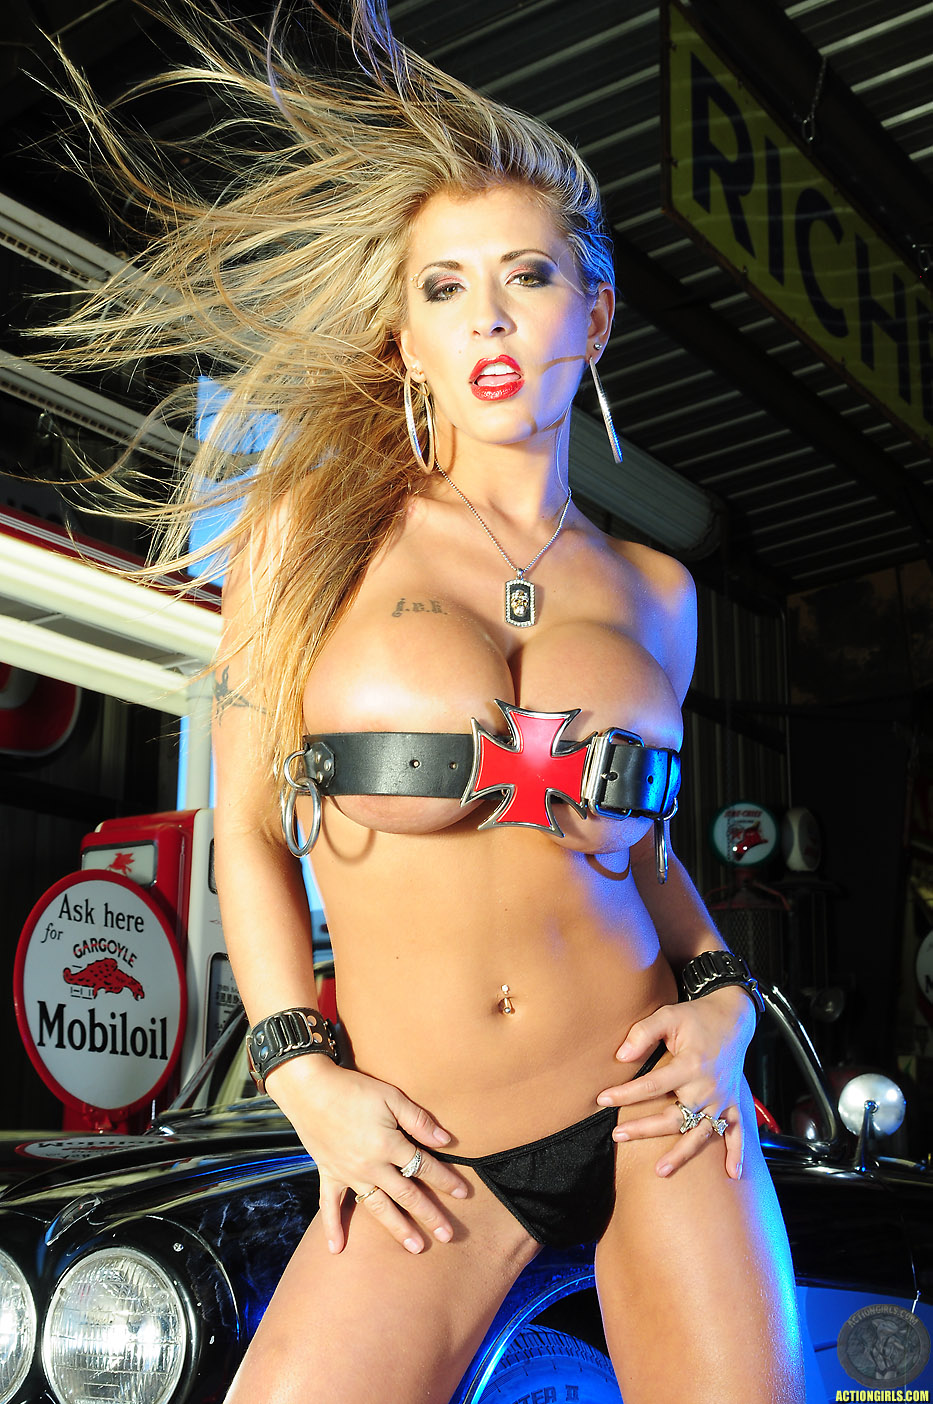 http://ww4.actiongirls.com/gallery55/Valerie-pics-ac/actiongirlsvalerieredgarage107.jpg